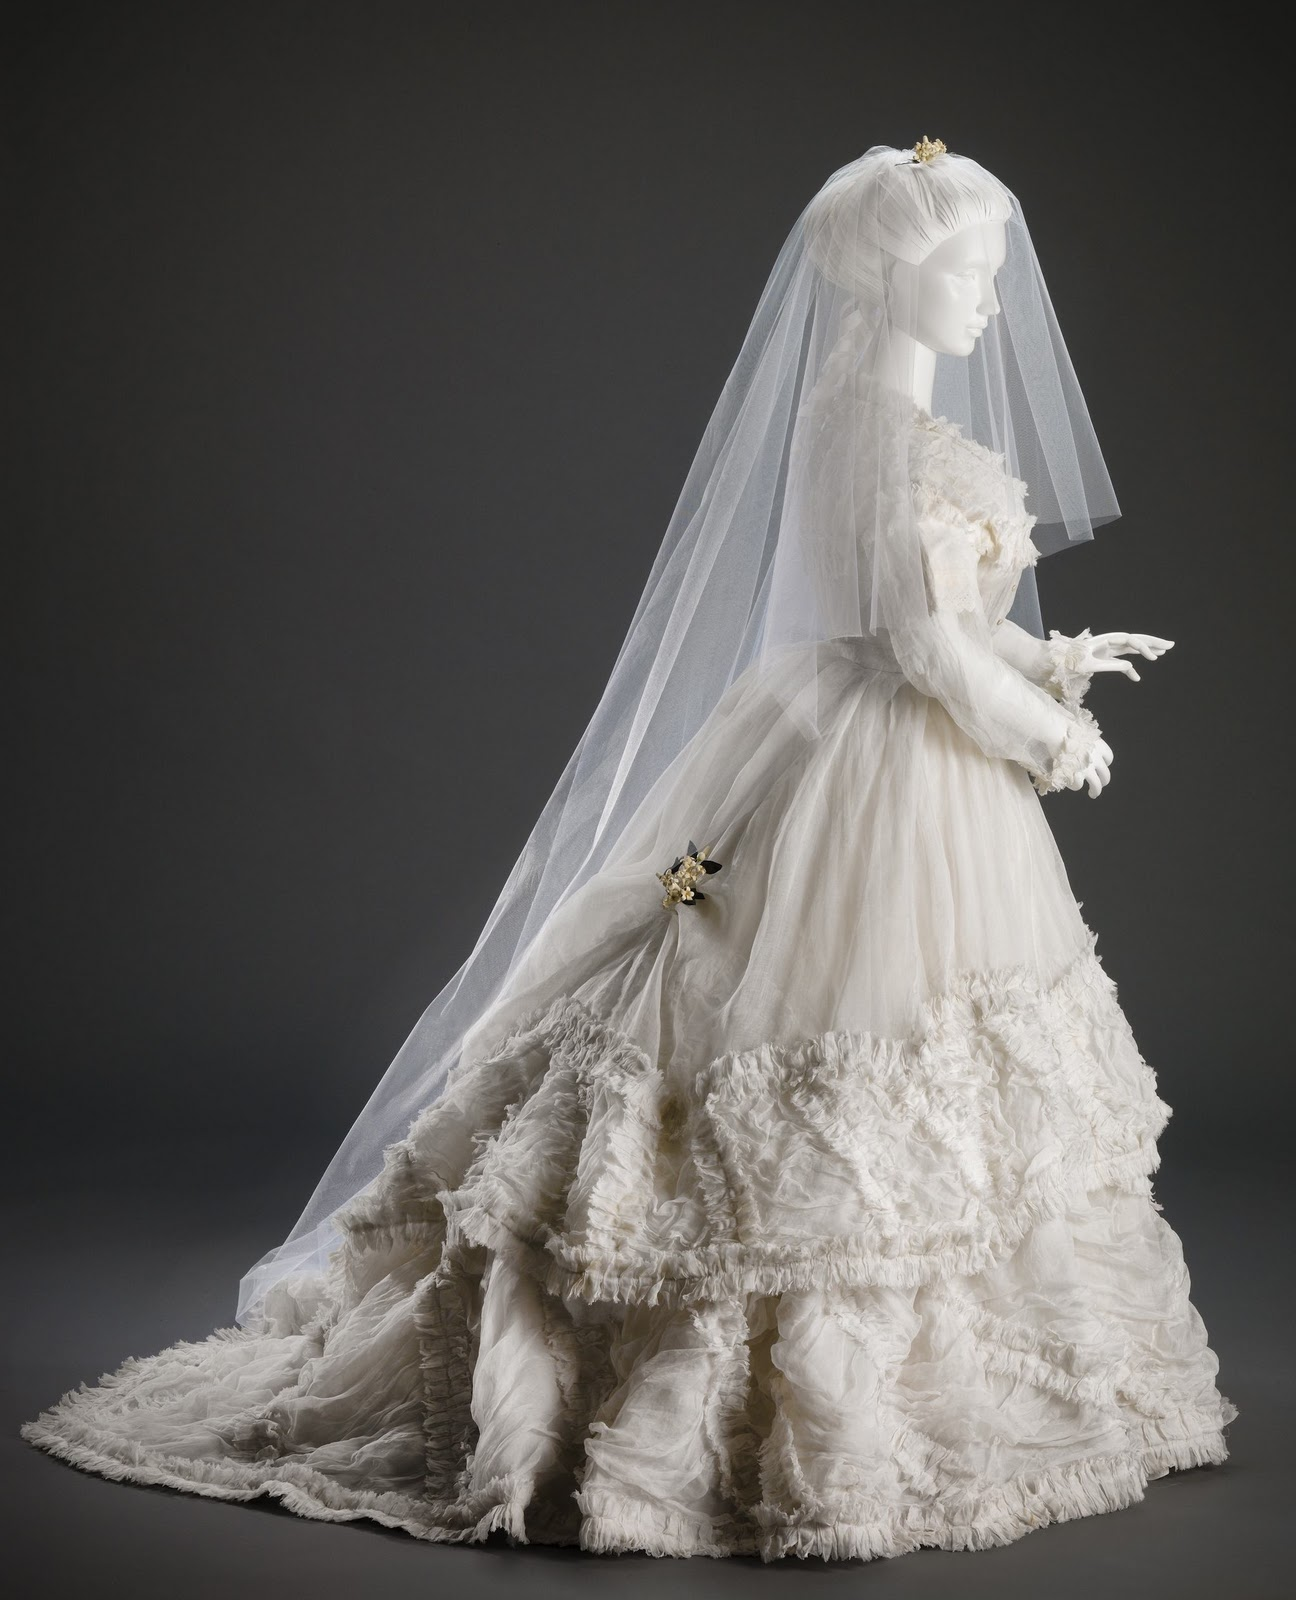 Wedding Dresses Cincinnati: Twirling Clare: Day At The Art Museum